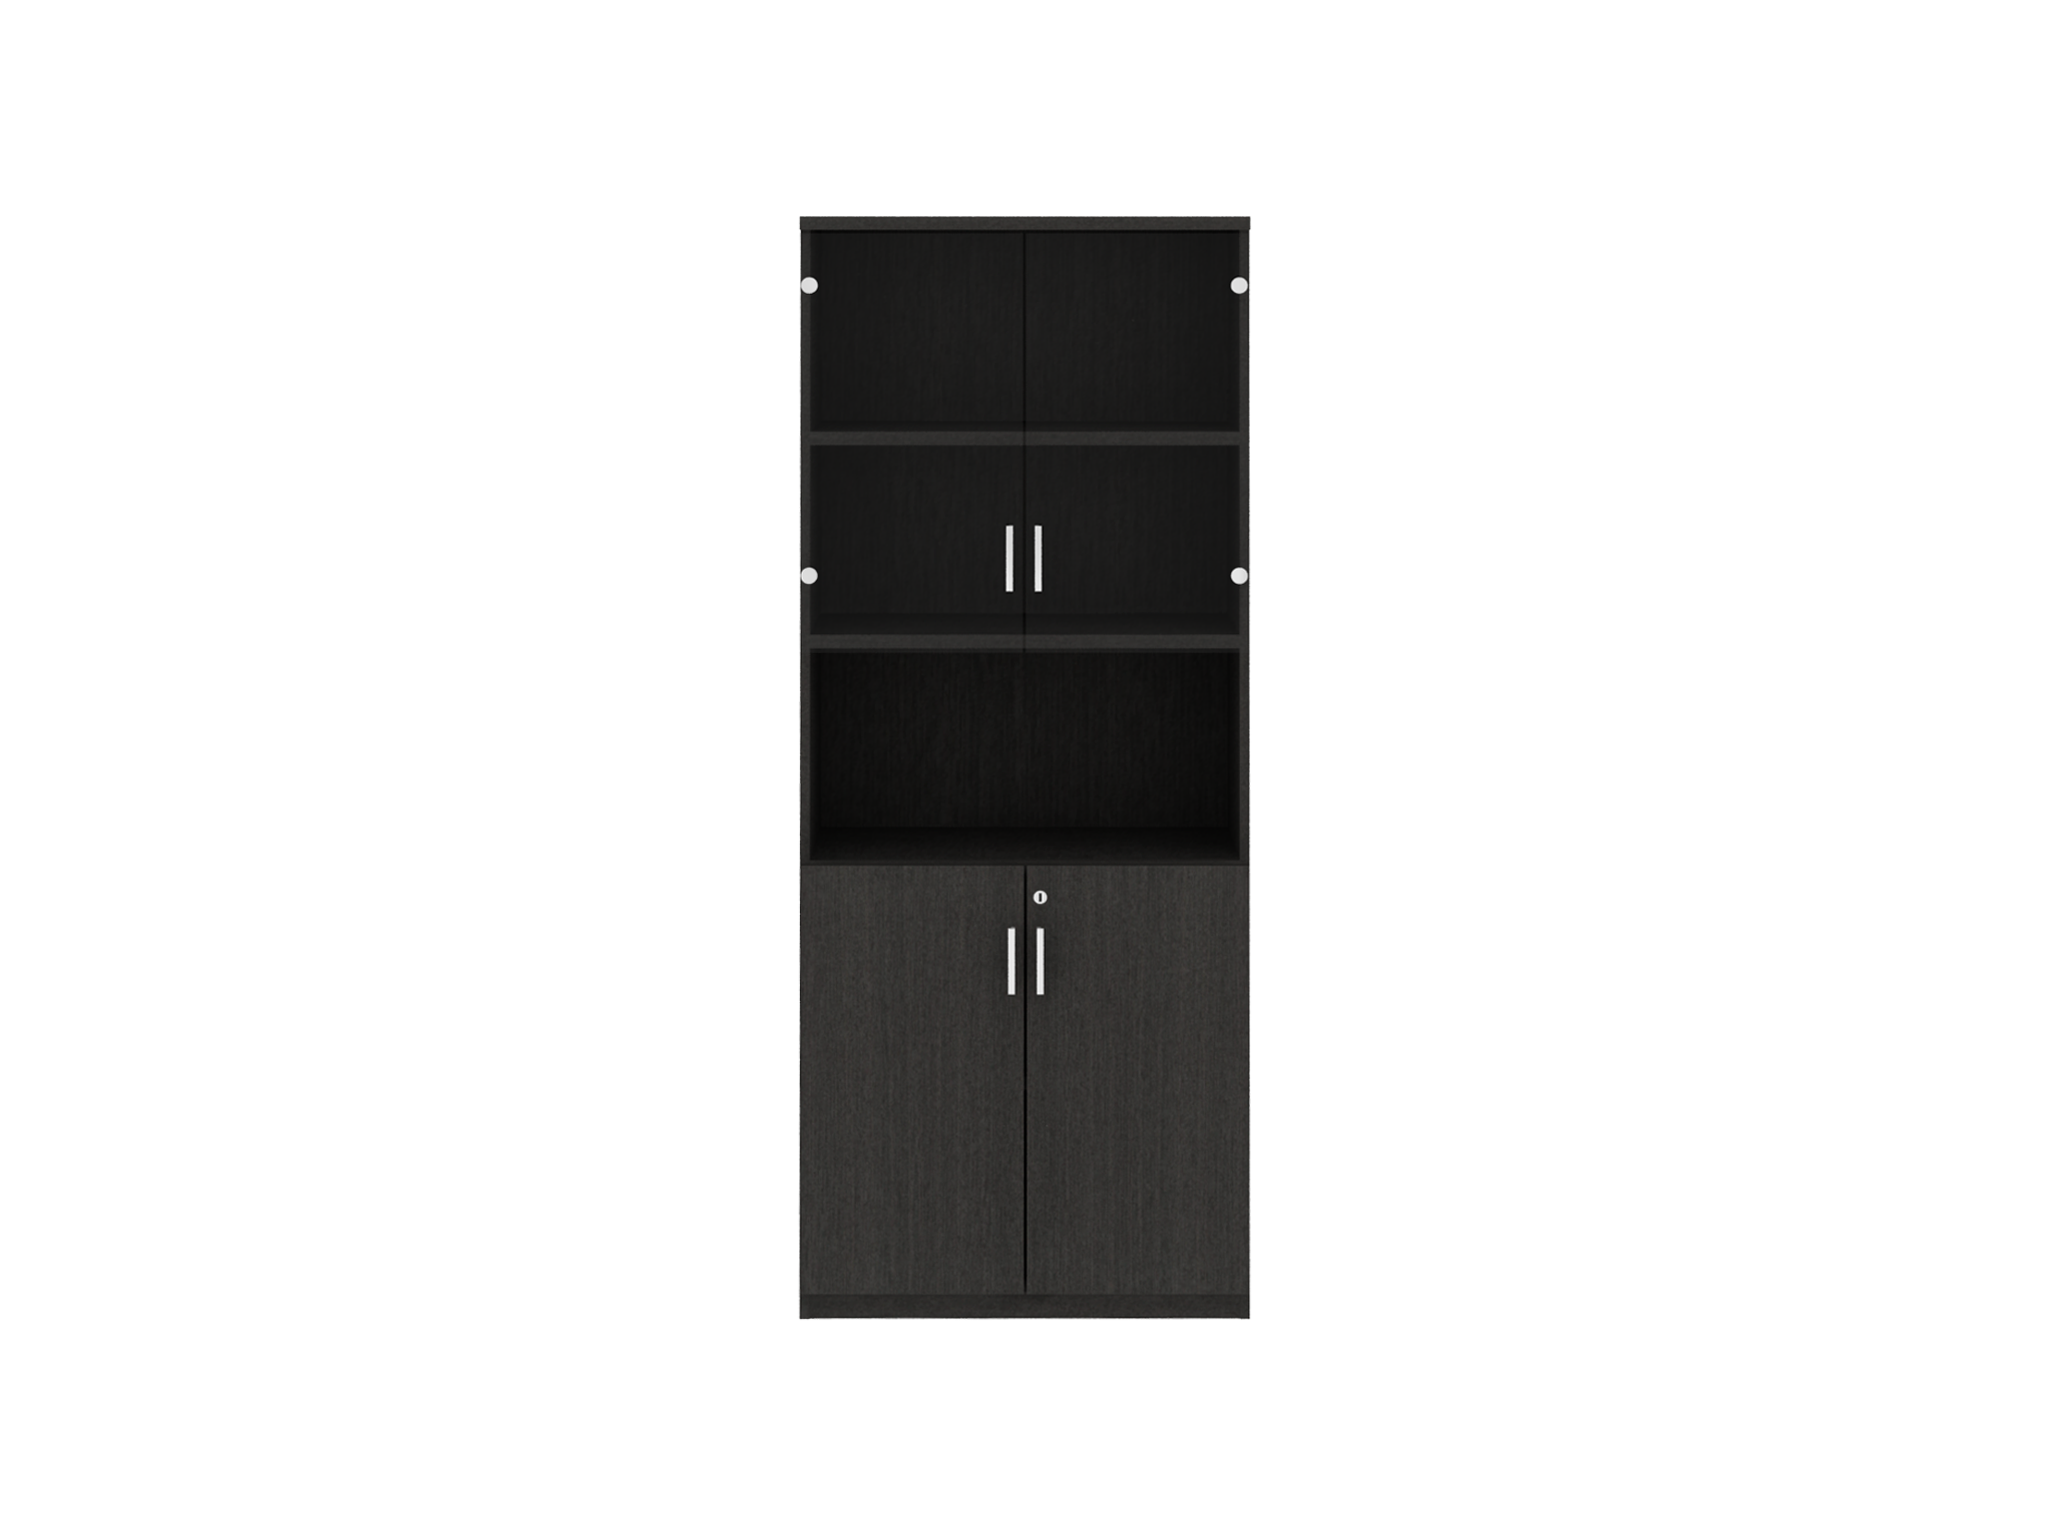 Office Cabinet DHC-00 + DC-05 + DC-01